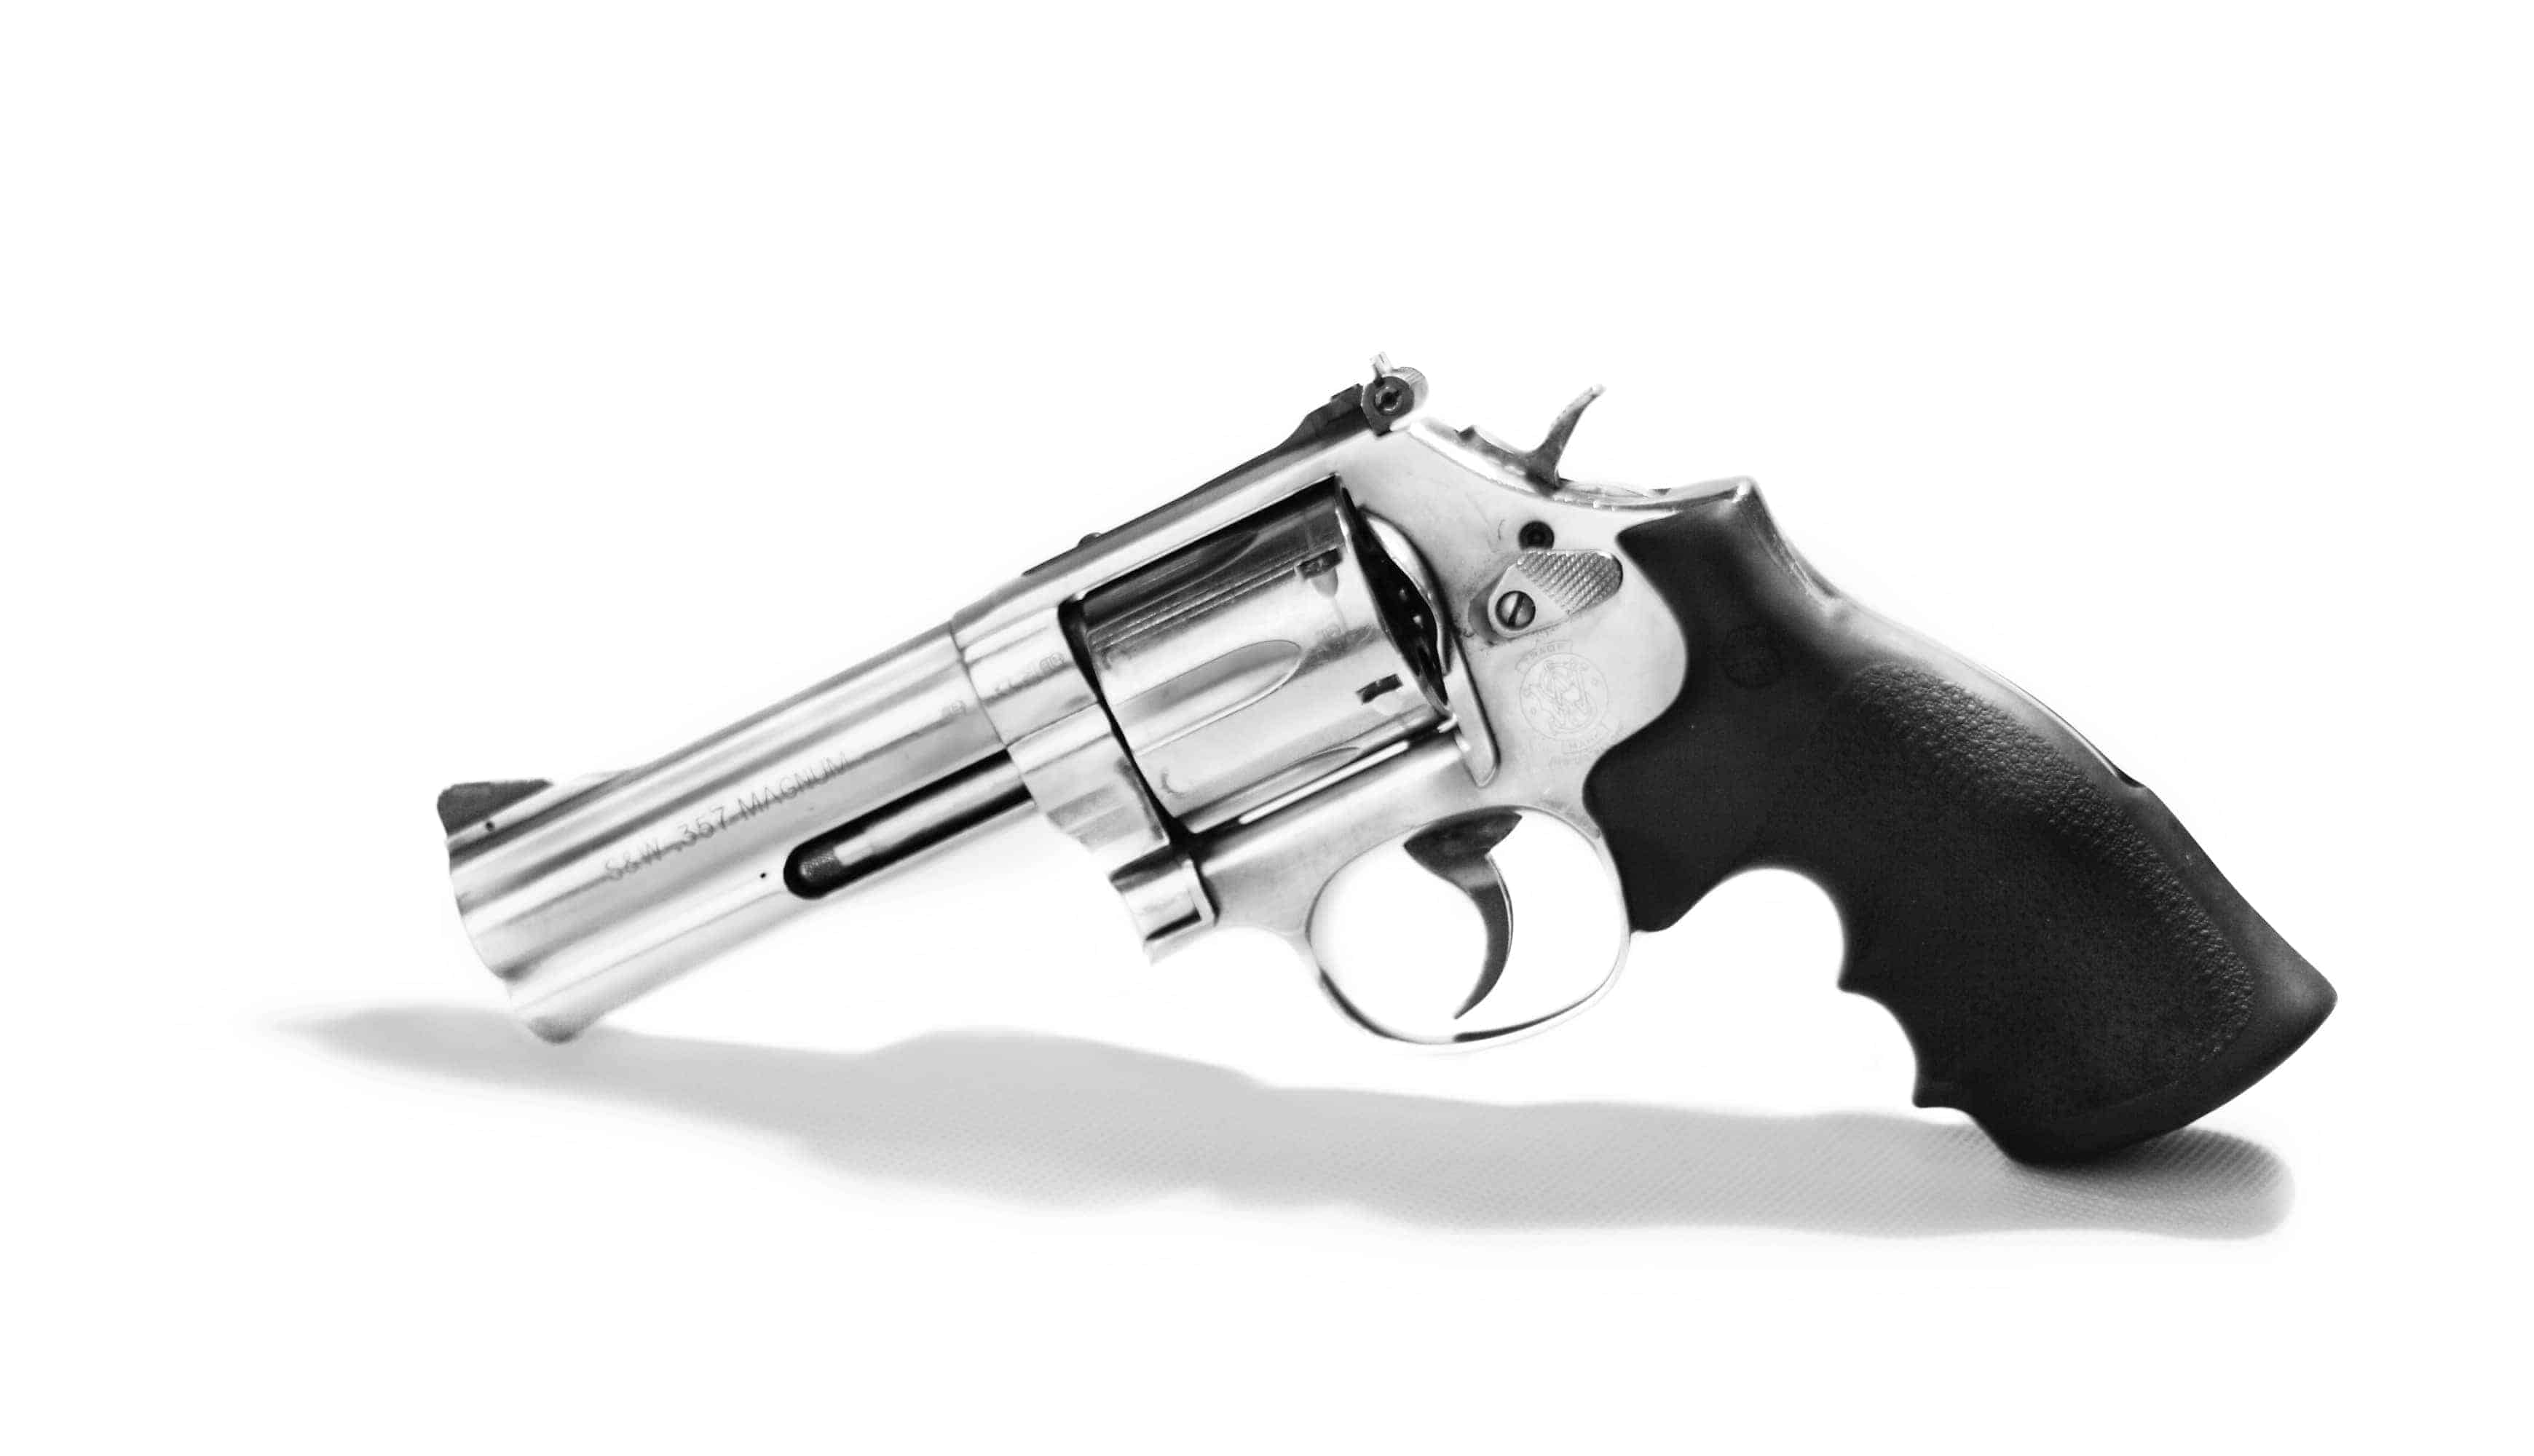 https://strzelnicabojowa.pl/uploads/guns/Smith&Wesson mod686(.38S .357M)-WEB-WIDE.JPG